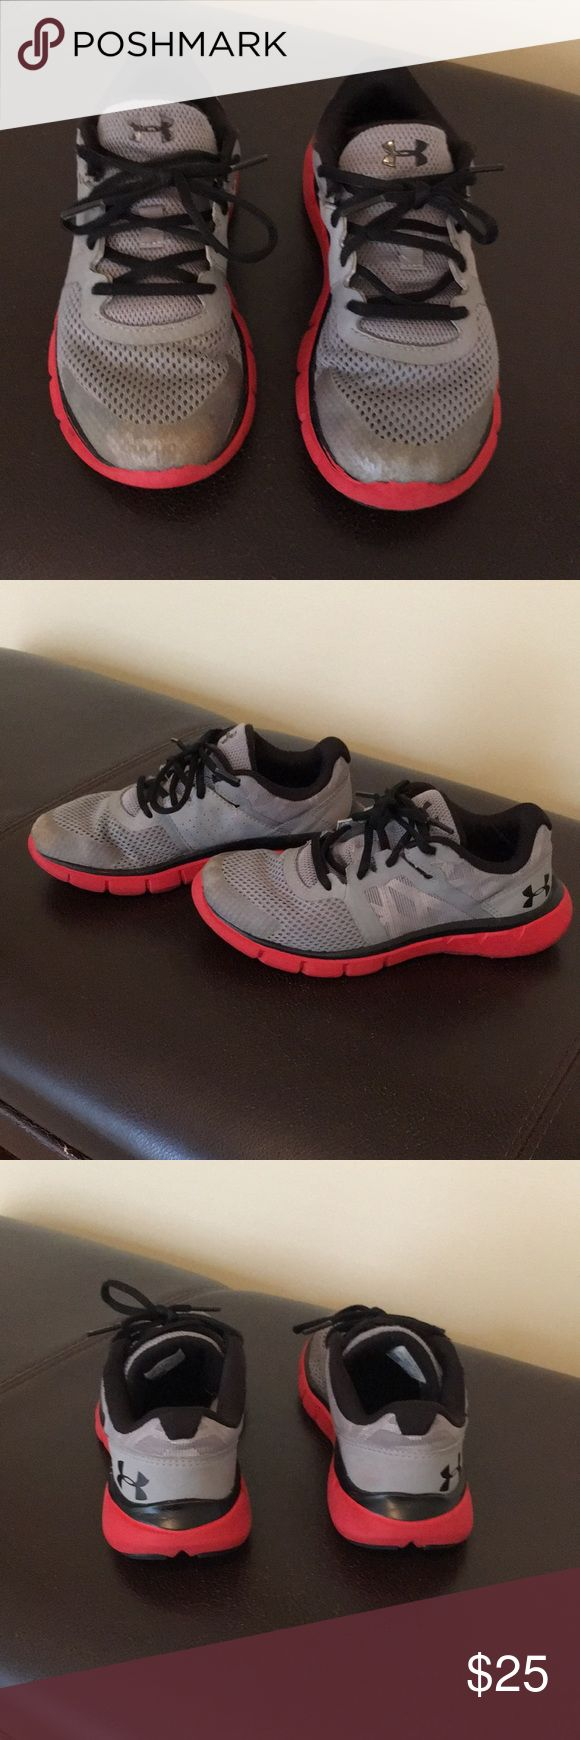 Kids Under Armour tennis shoes Kids Under Armour tennis shoes, size 2 youth, color is gray and with red sole, a few scratches on the front, other than that in good condition. Under Armour Shoes Sneakers